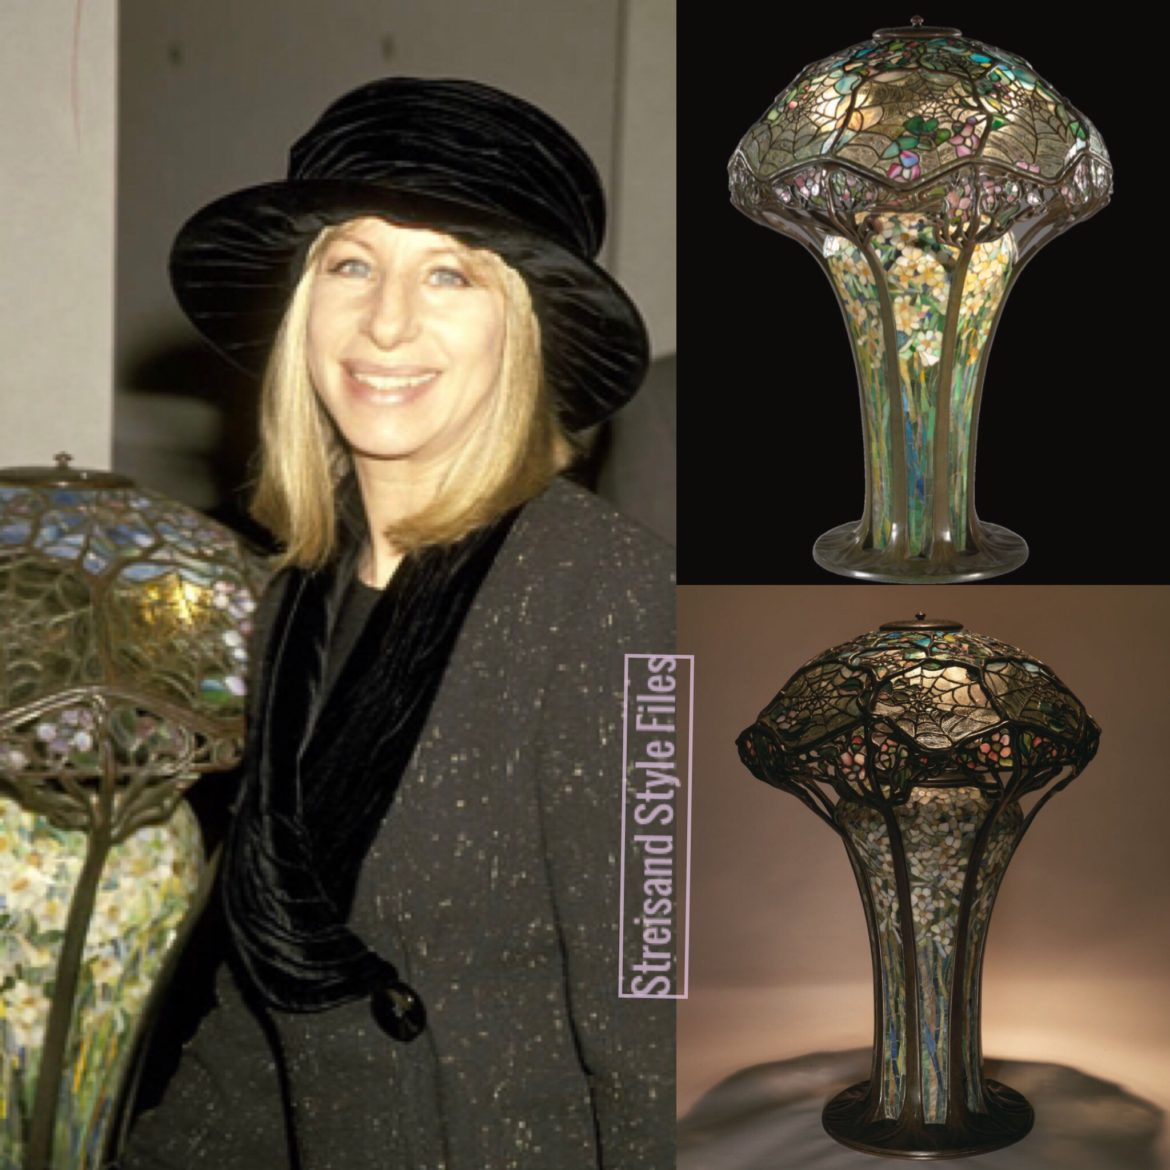 Barbra's Rare Tiffany Cobweb Lamp